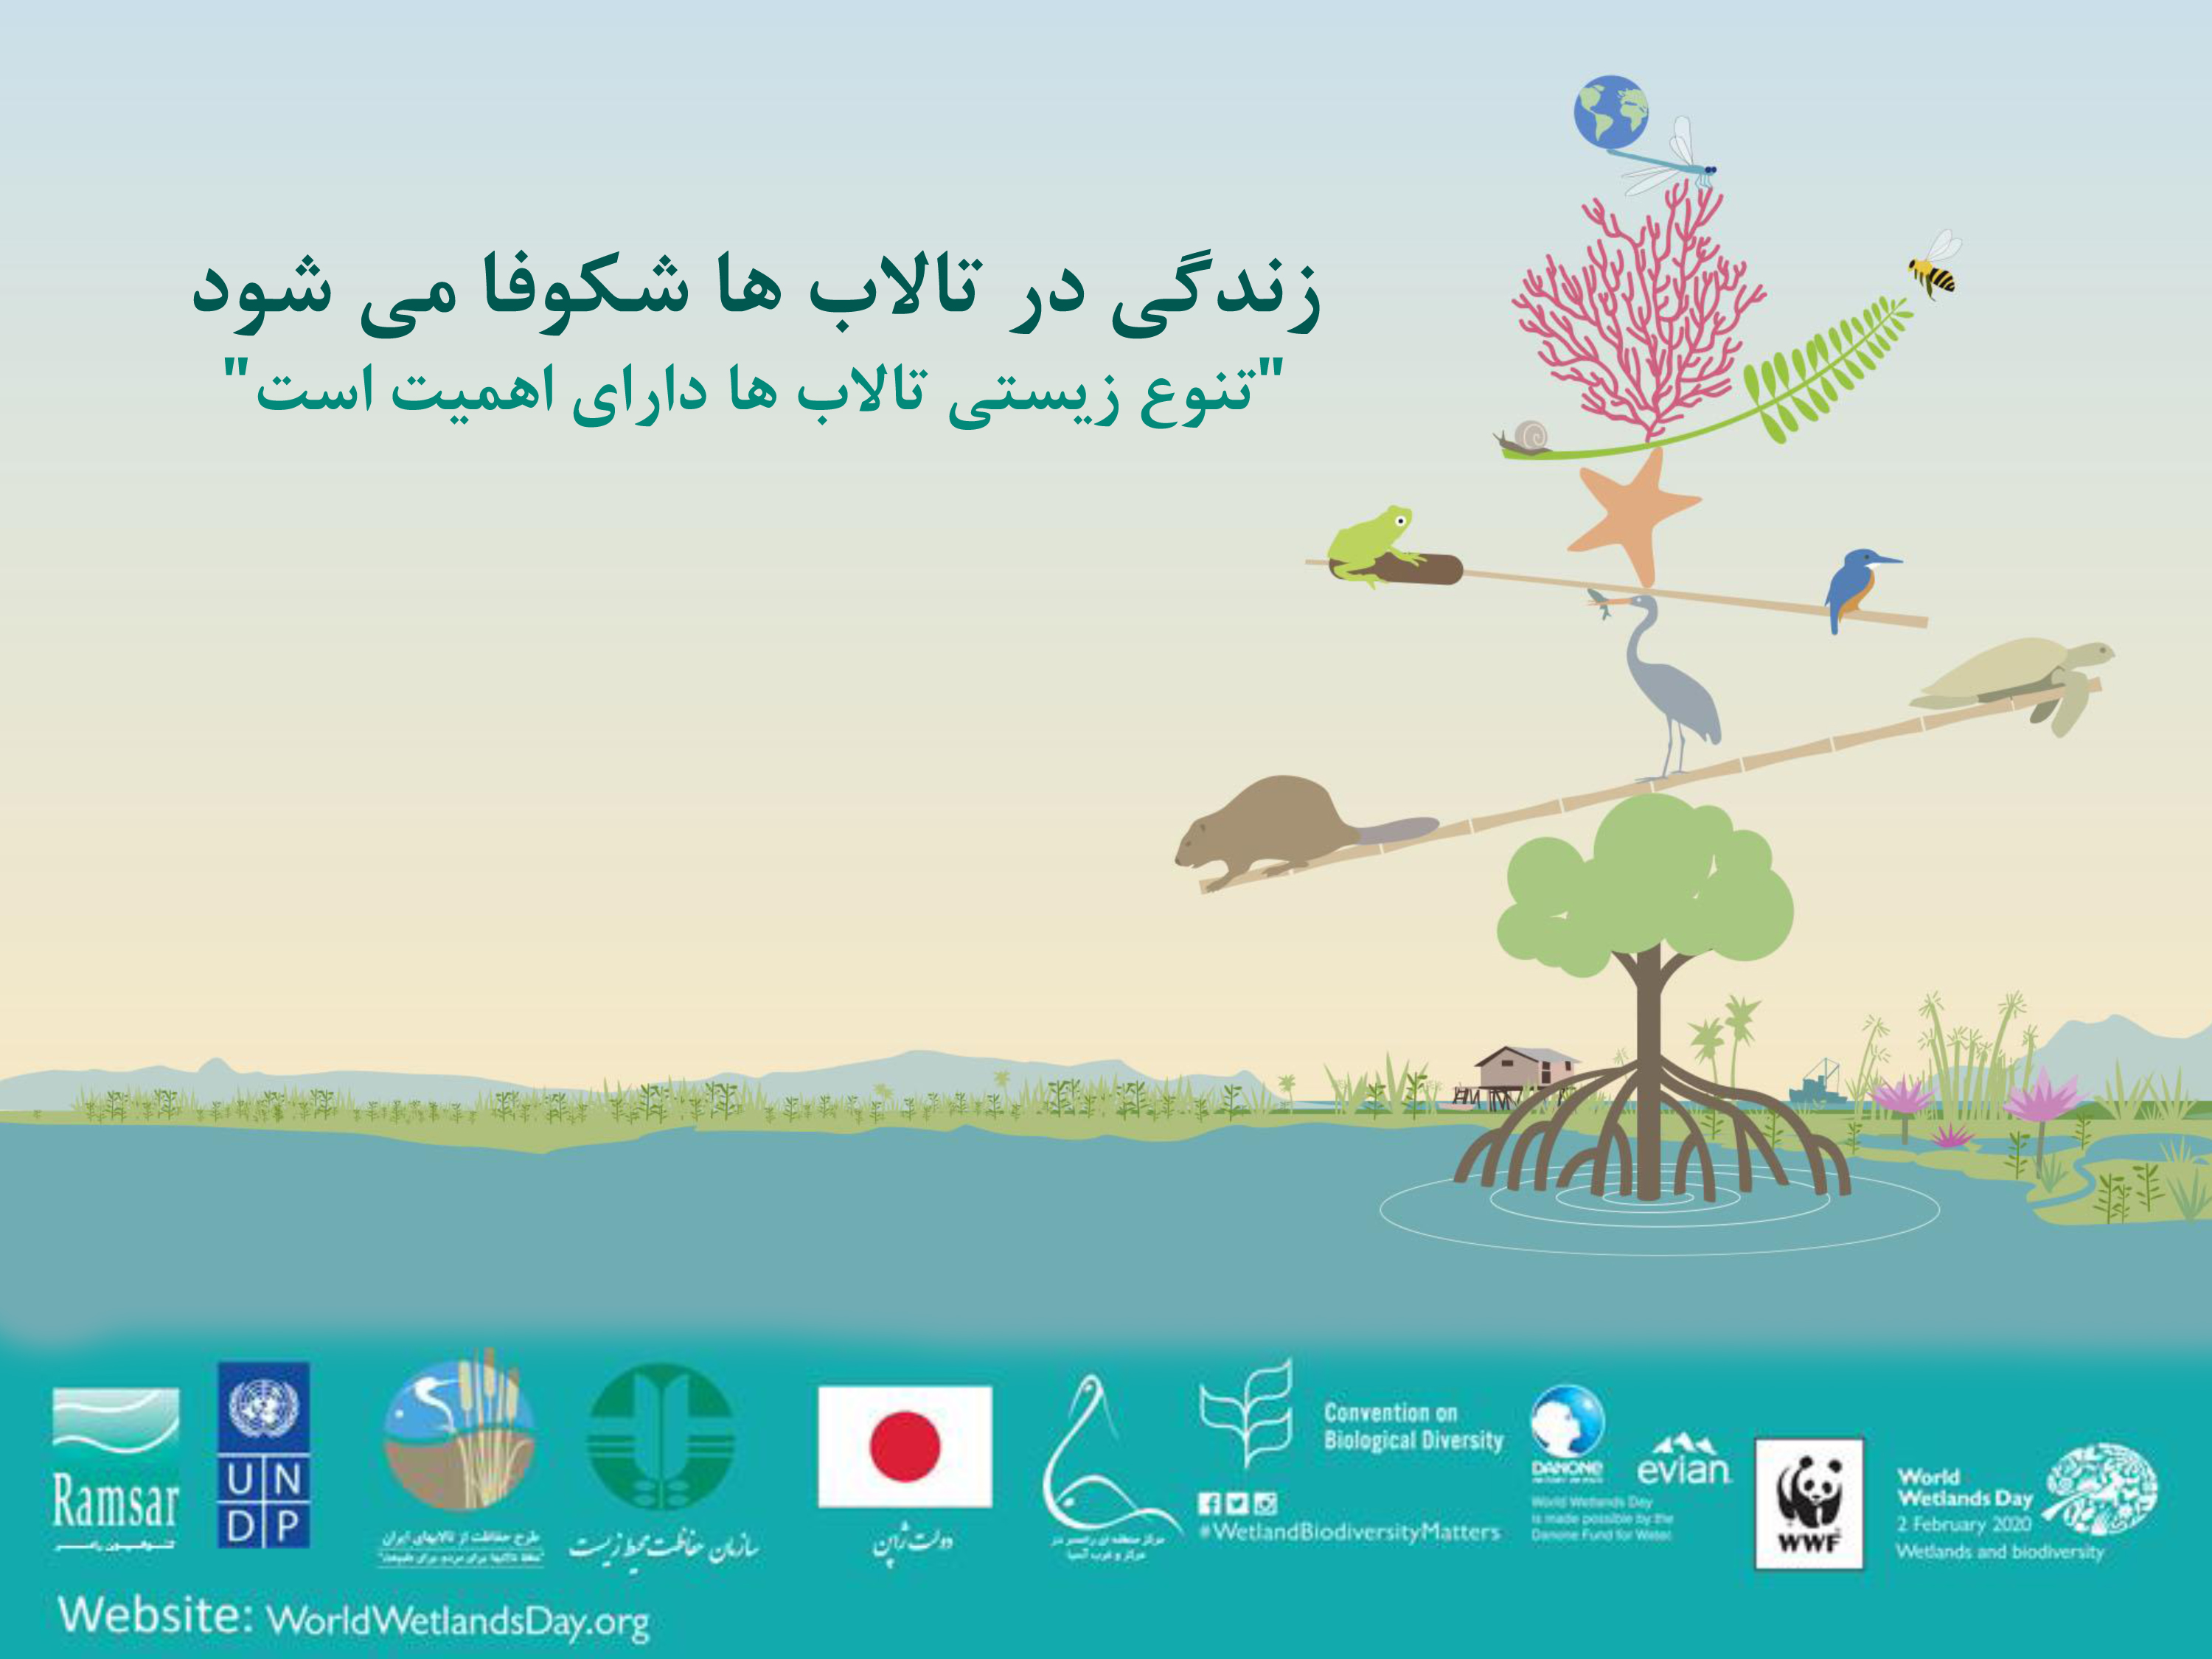 The customs of the international wetlands' day will be observed by the Department of Environment of Kurdistan province and Zarivar wetland.